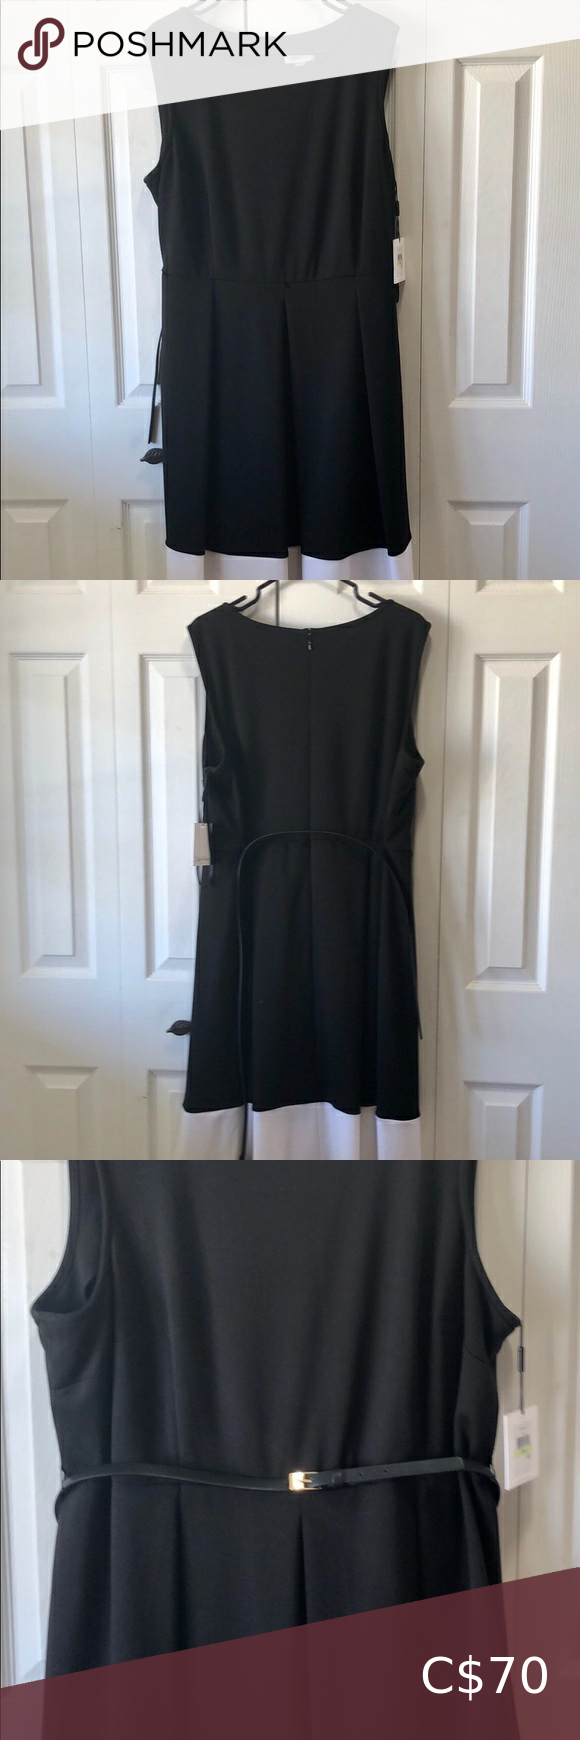 Calvin Klein Dress Black Dress With White Trim At Bottom Very Comfy And Well Made Nwt A Spot Womens Dress Jackets Fitted Blue Dress Calvin Klein Black Dress [ 1740 x 580 Pixel ]